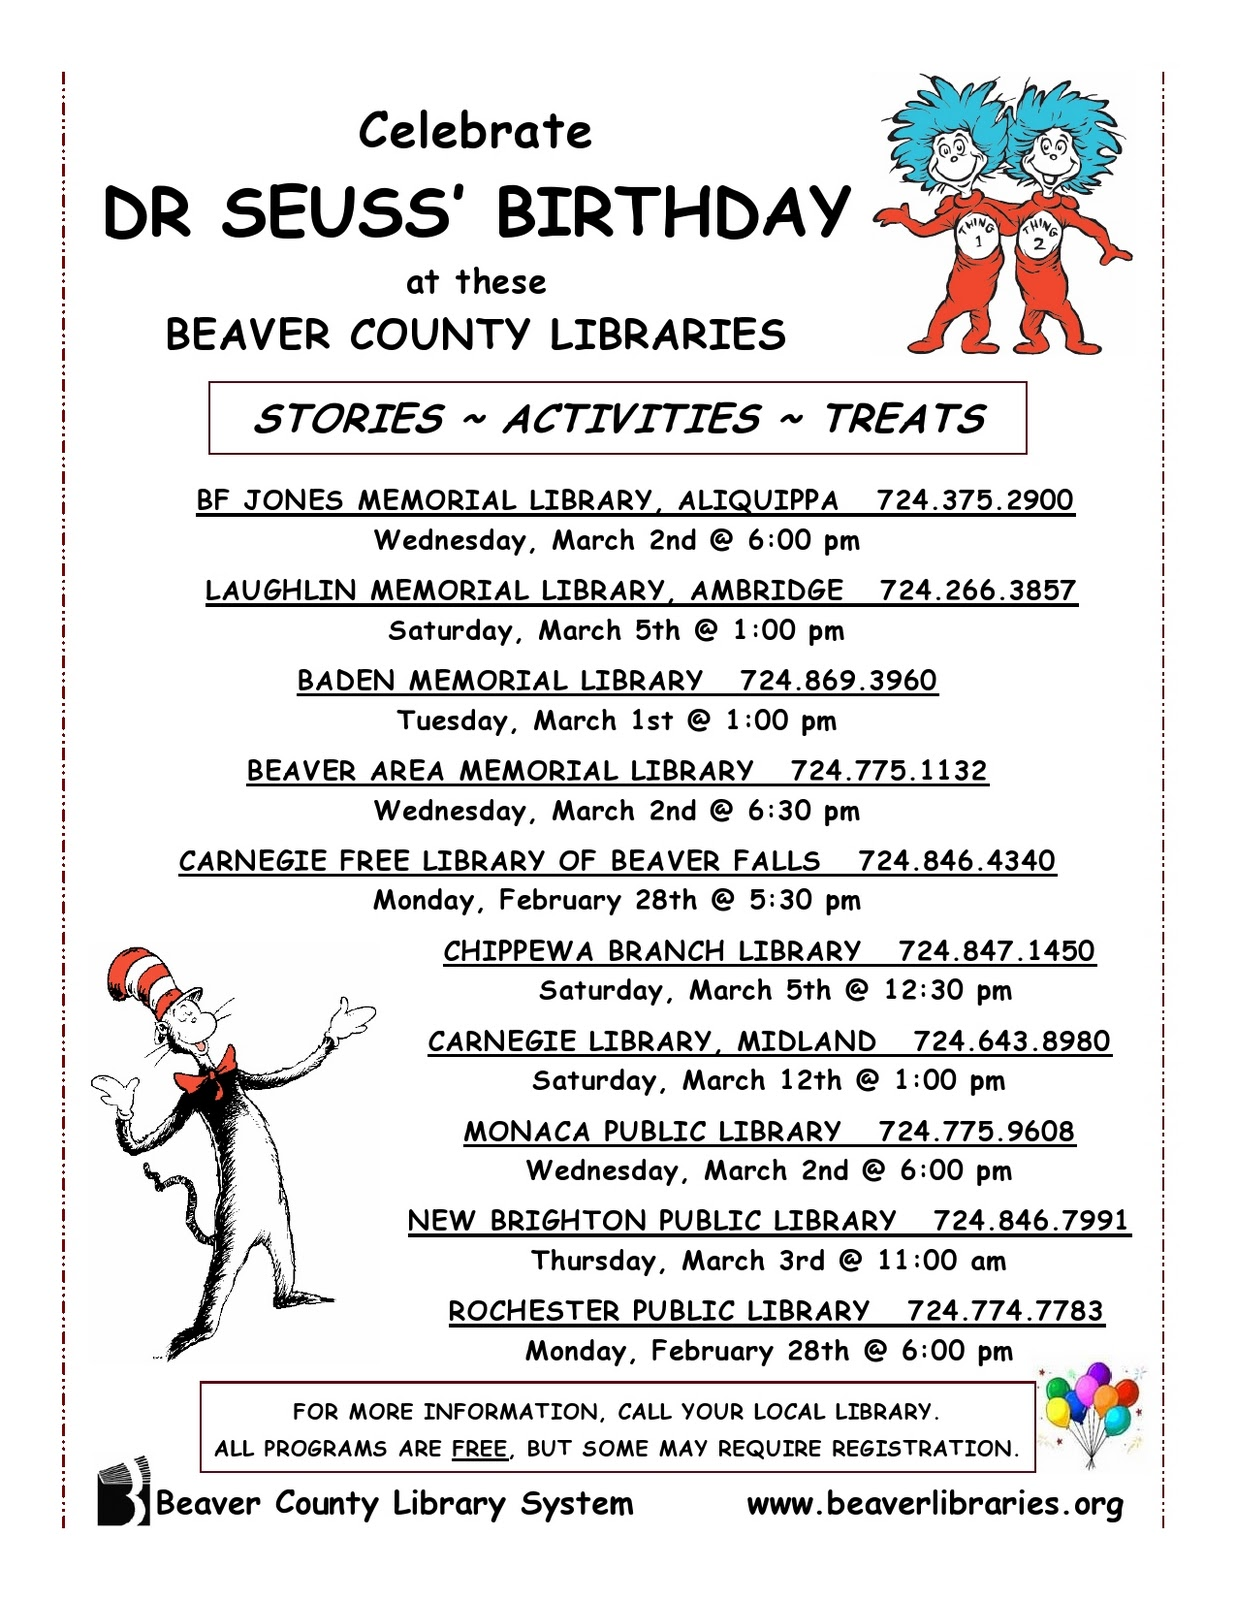 worksheet Dr Seuss Worksheets Free celebrate dr seuss birthday macaroni kid birthday